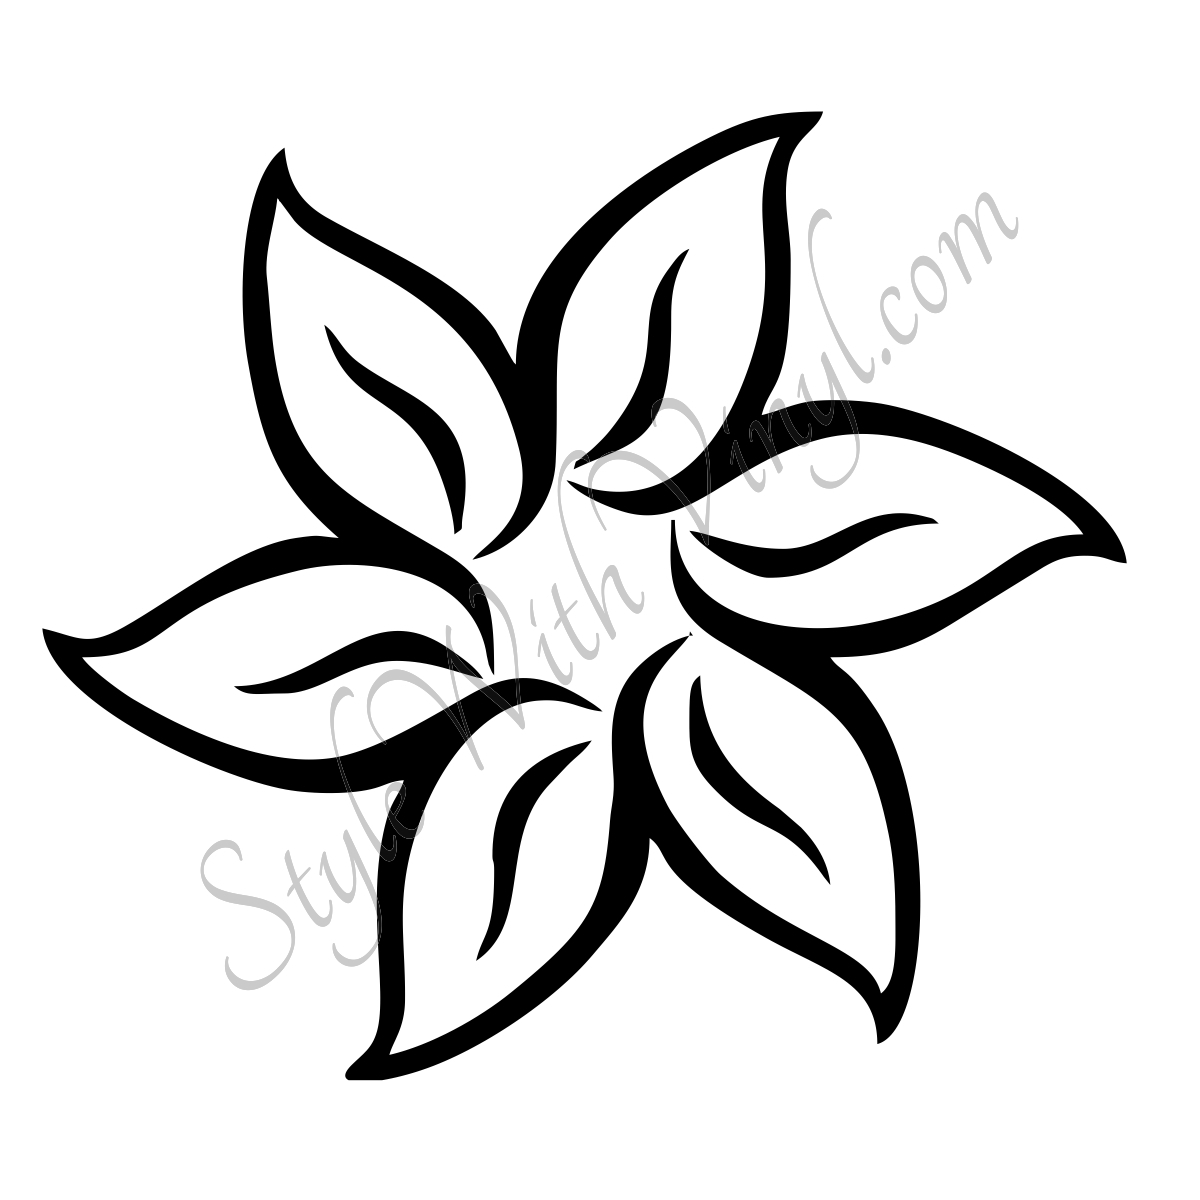 1200x1200 Simple Flower Drawing Ideas Draw Easy Flower Drawings Simple